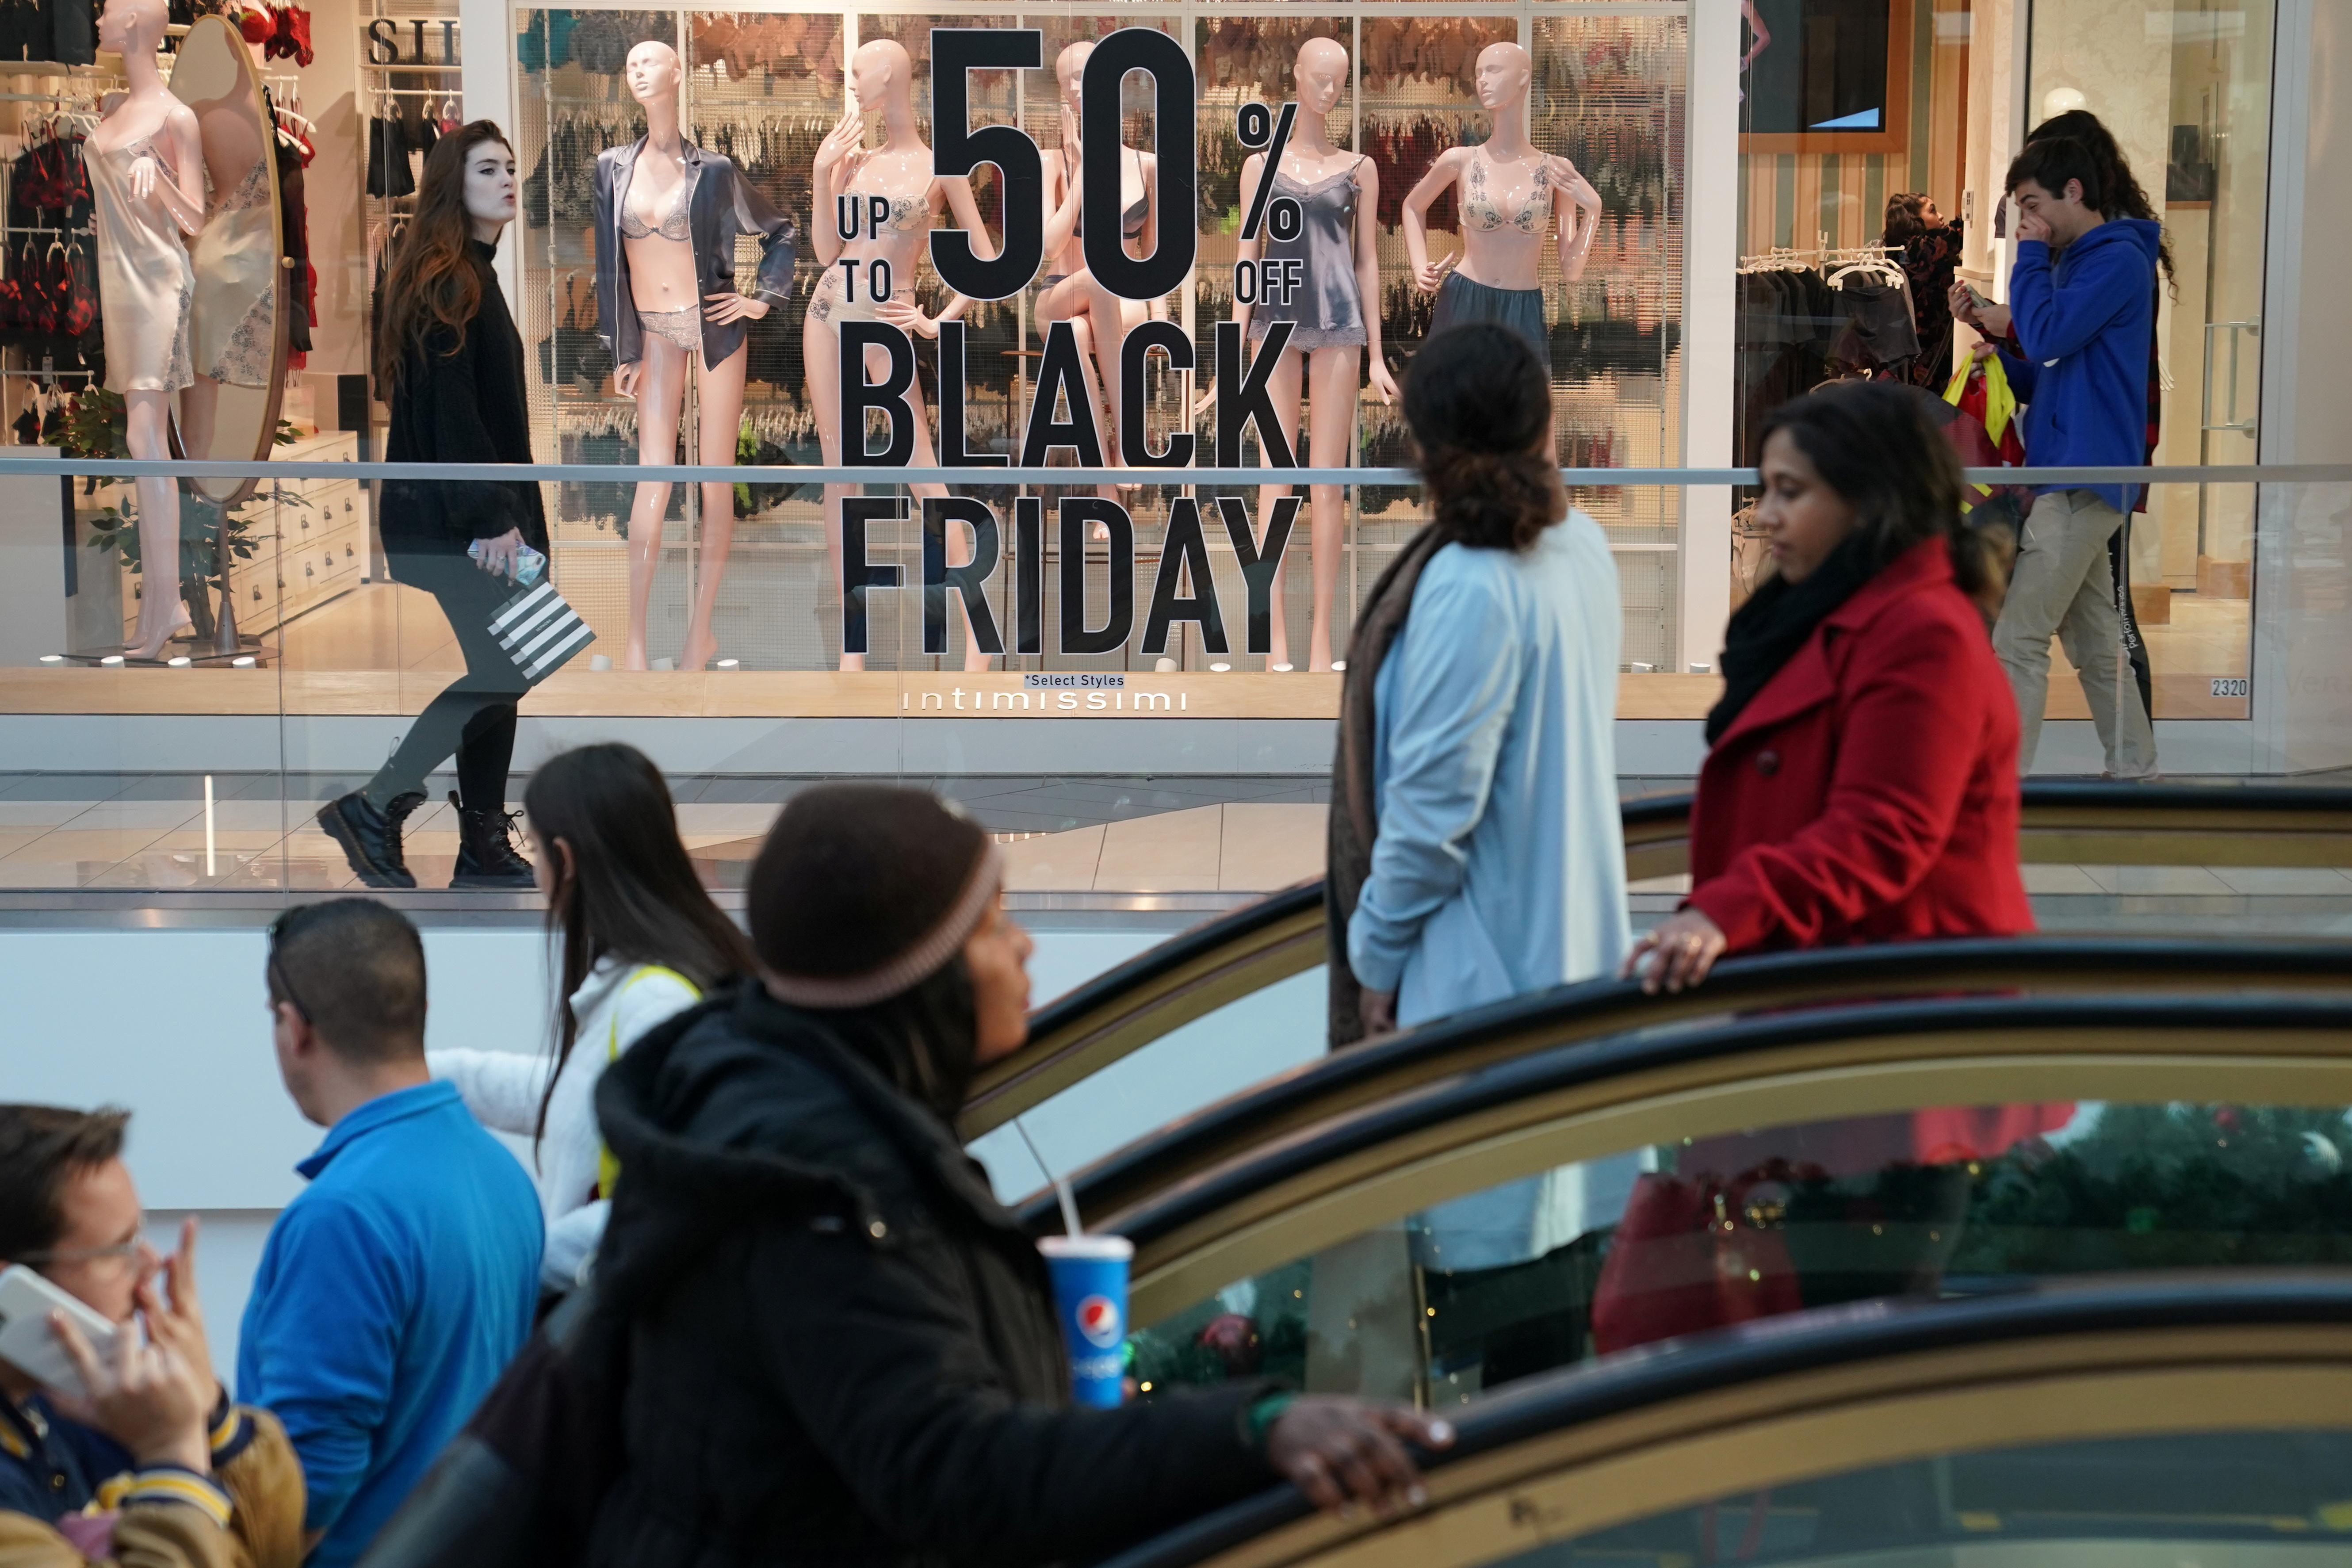 Black Friday shoppers stay away from stores, make $7 billion-plus...